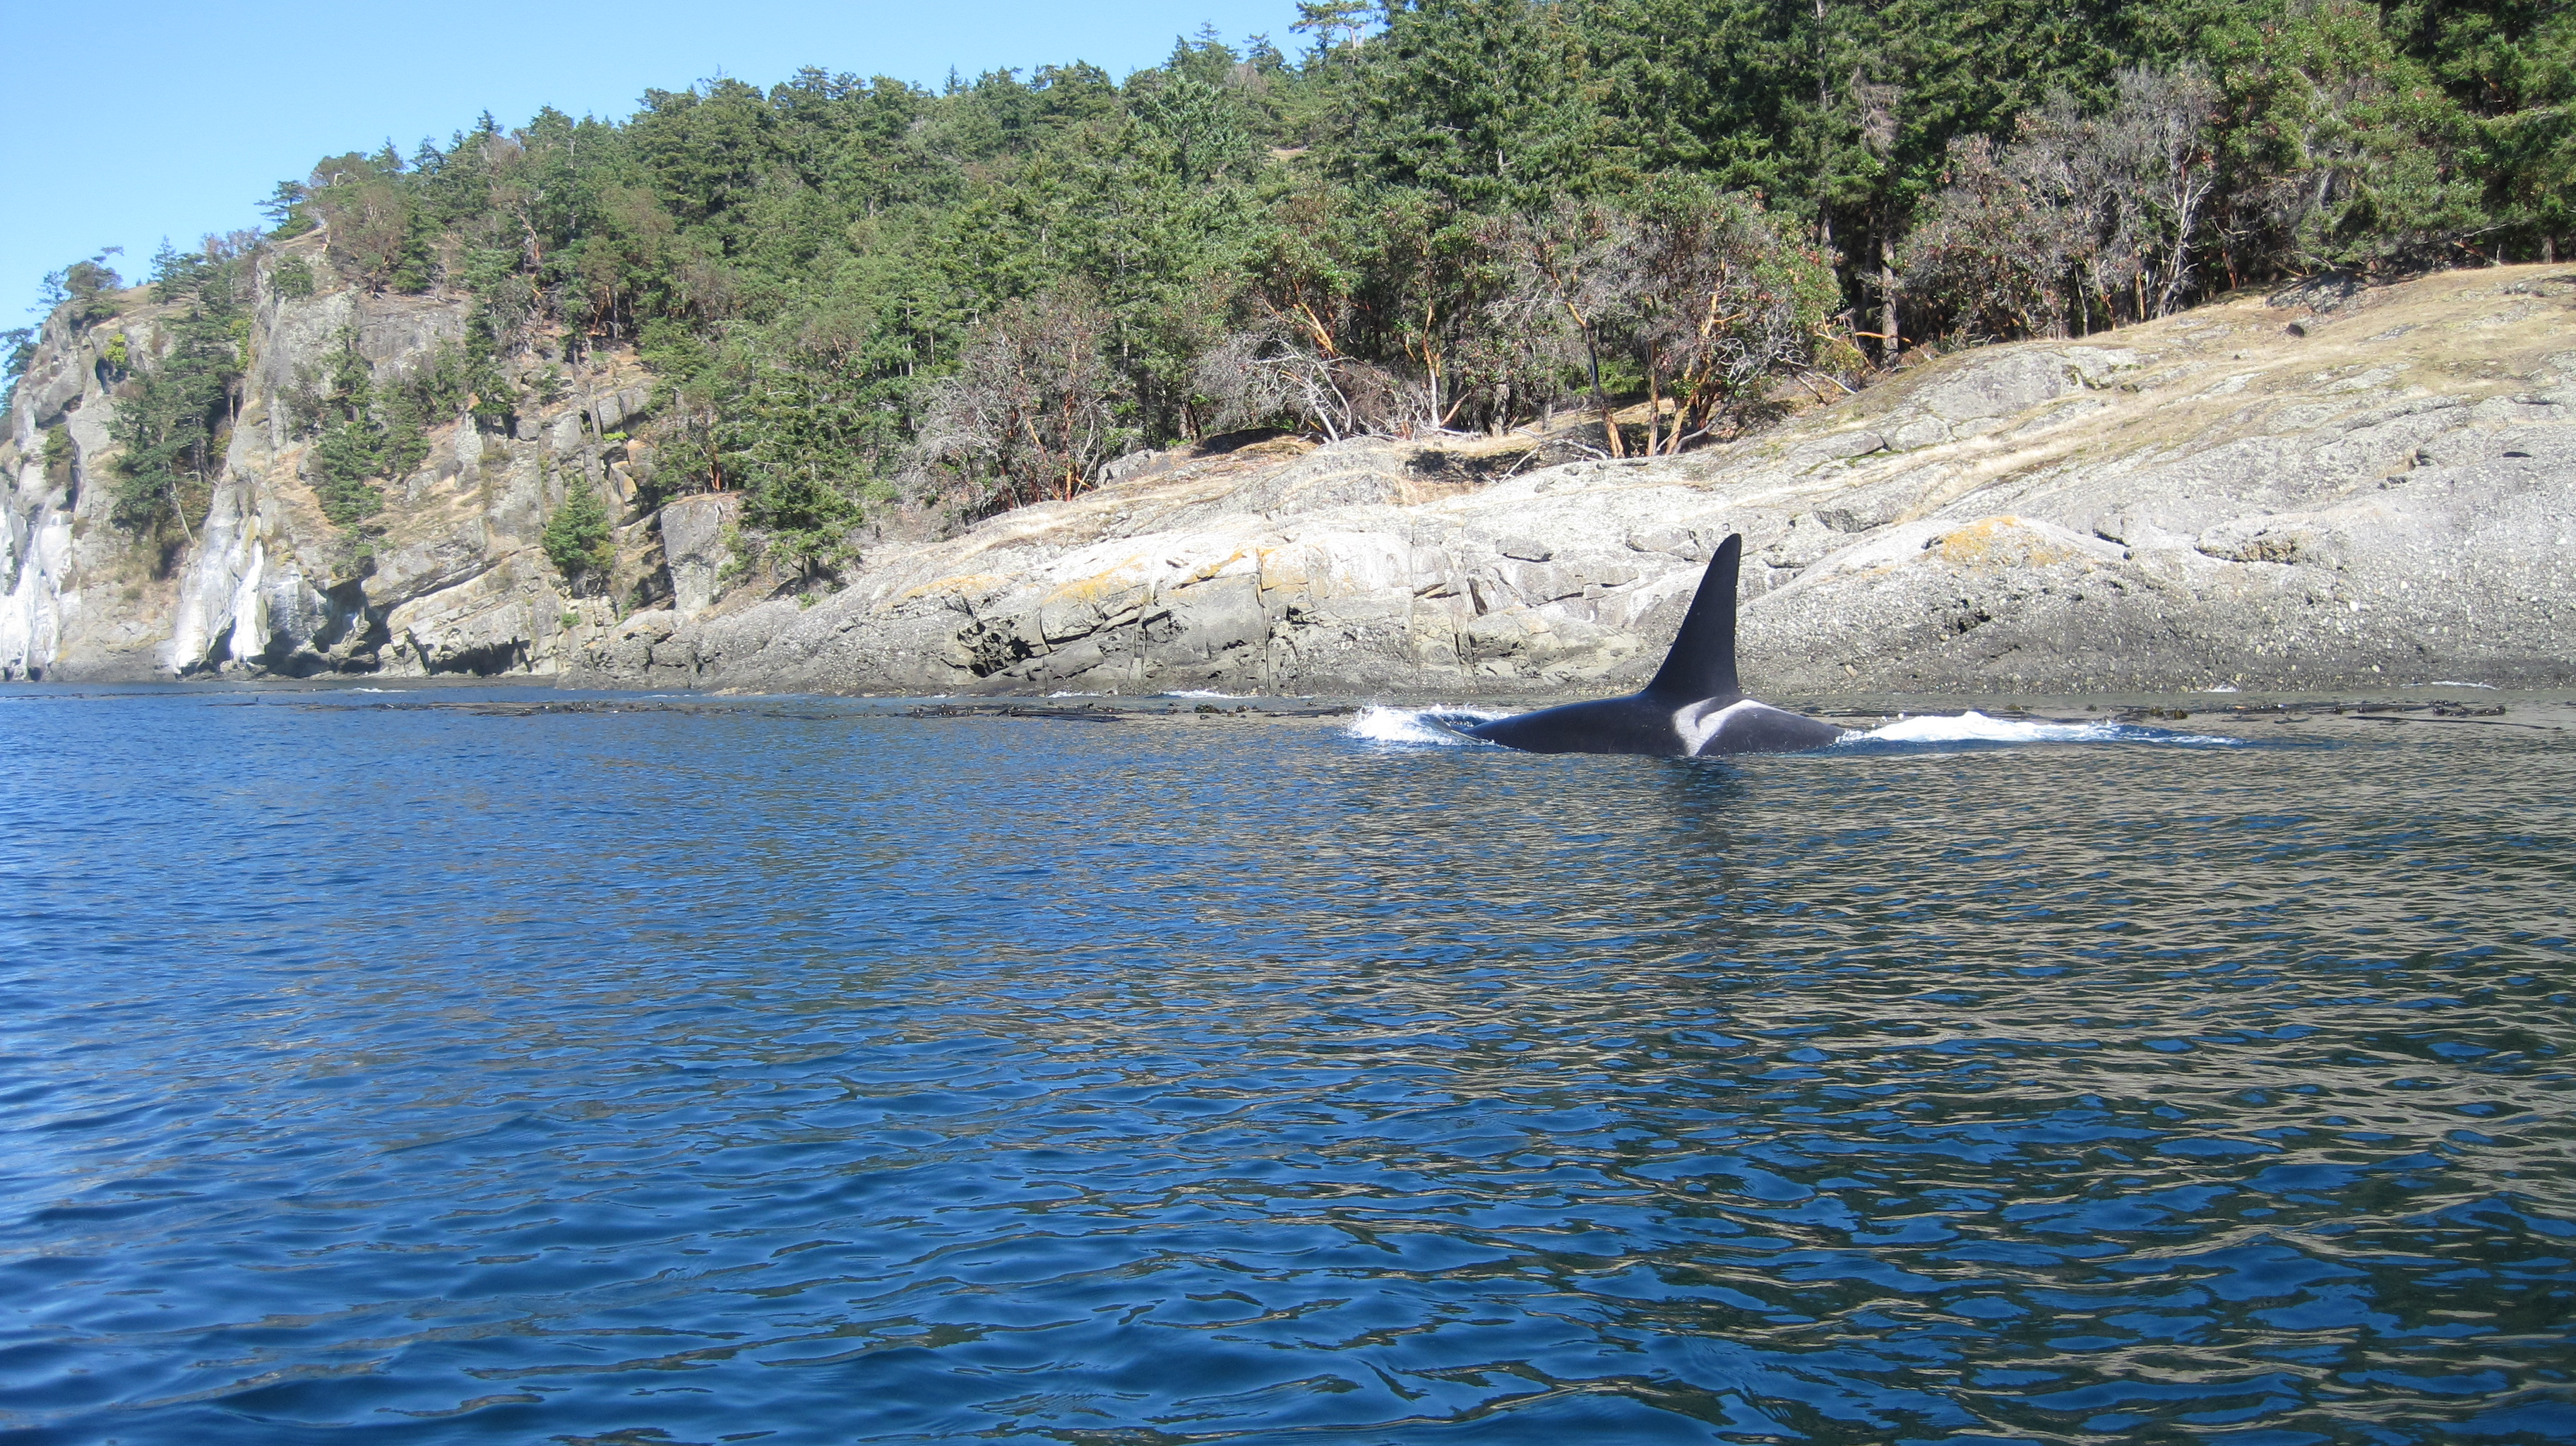 orca fin breaking the water surface in bay with small beach and tree line in background